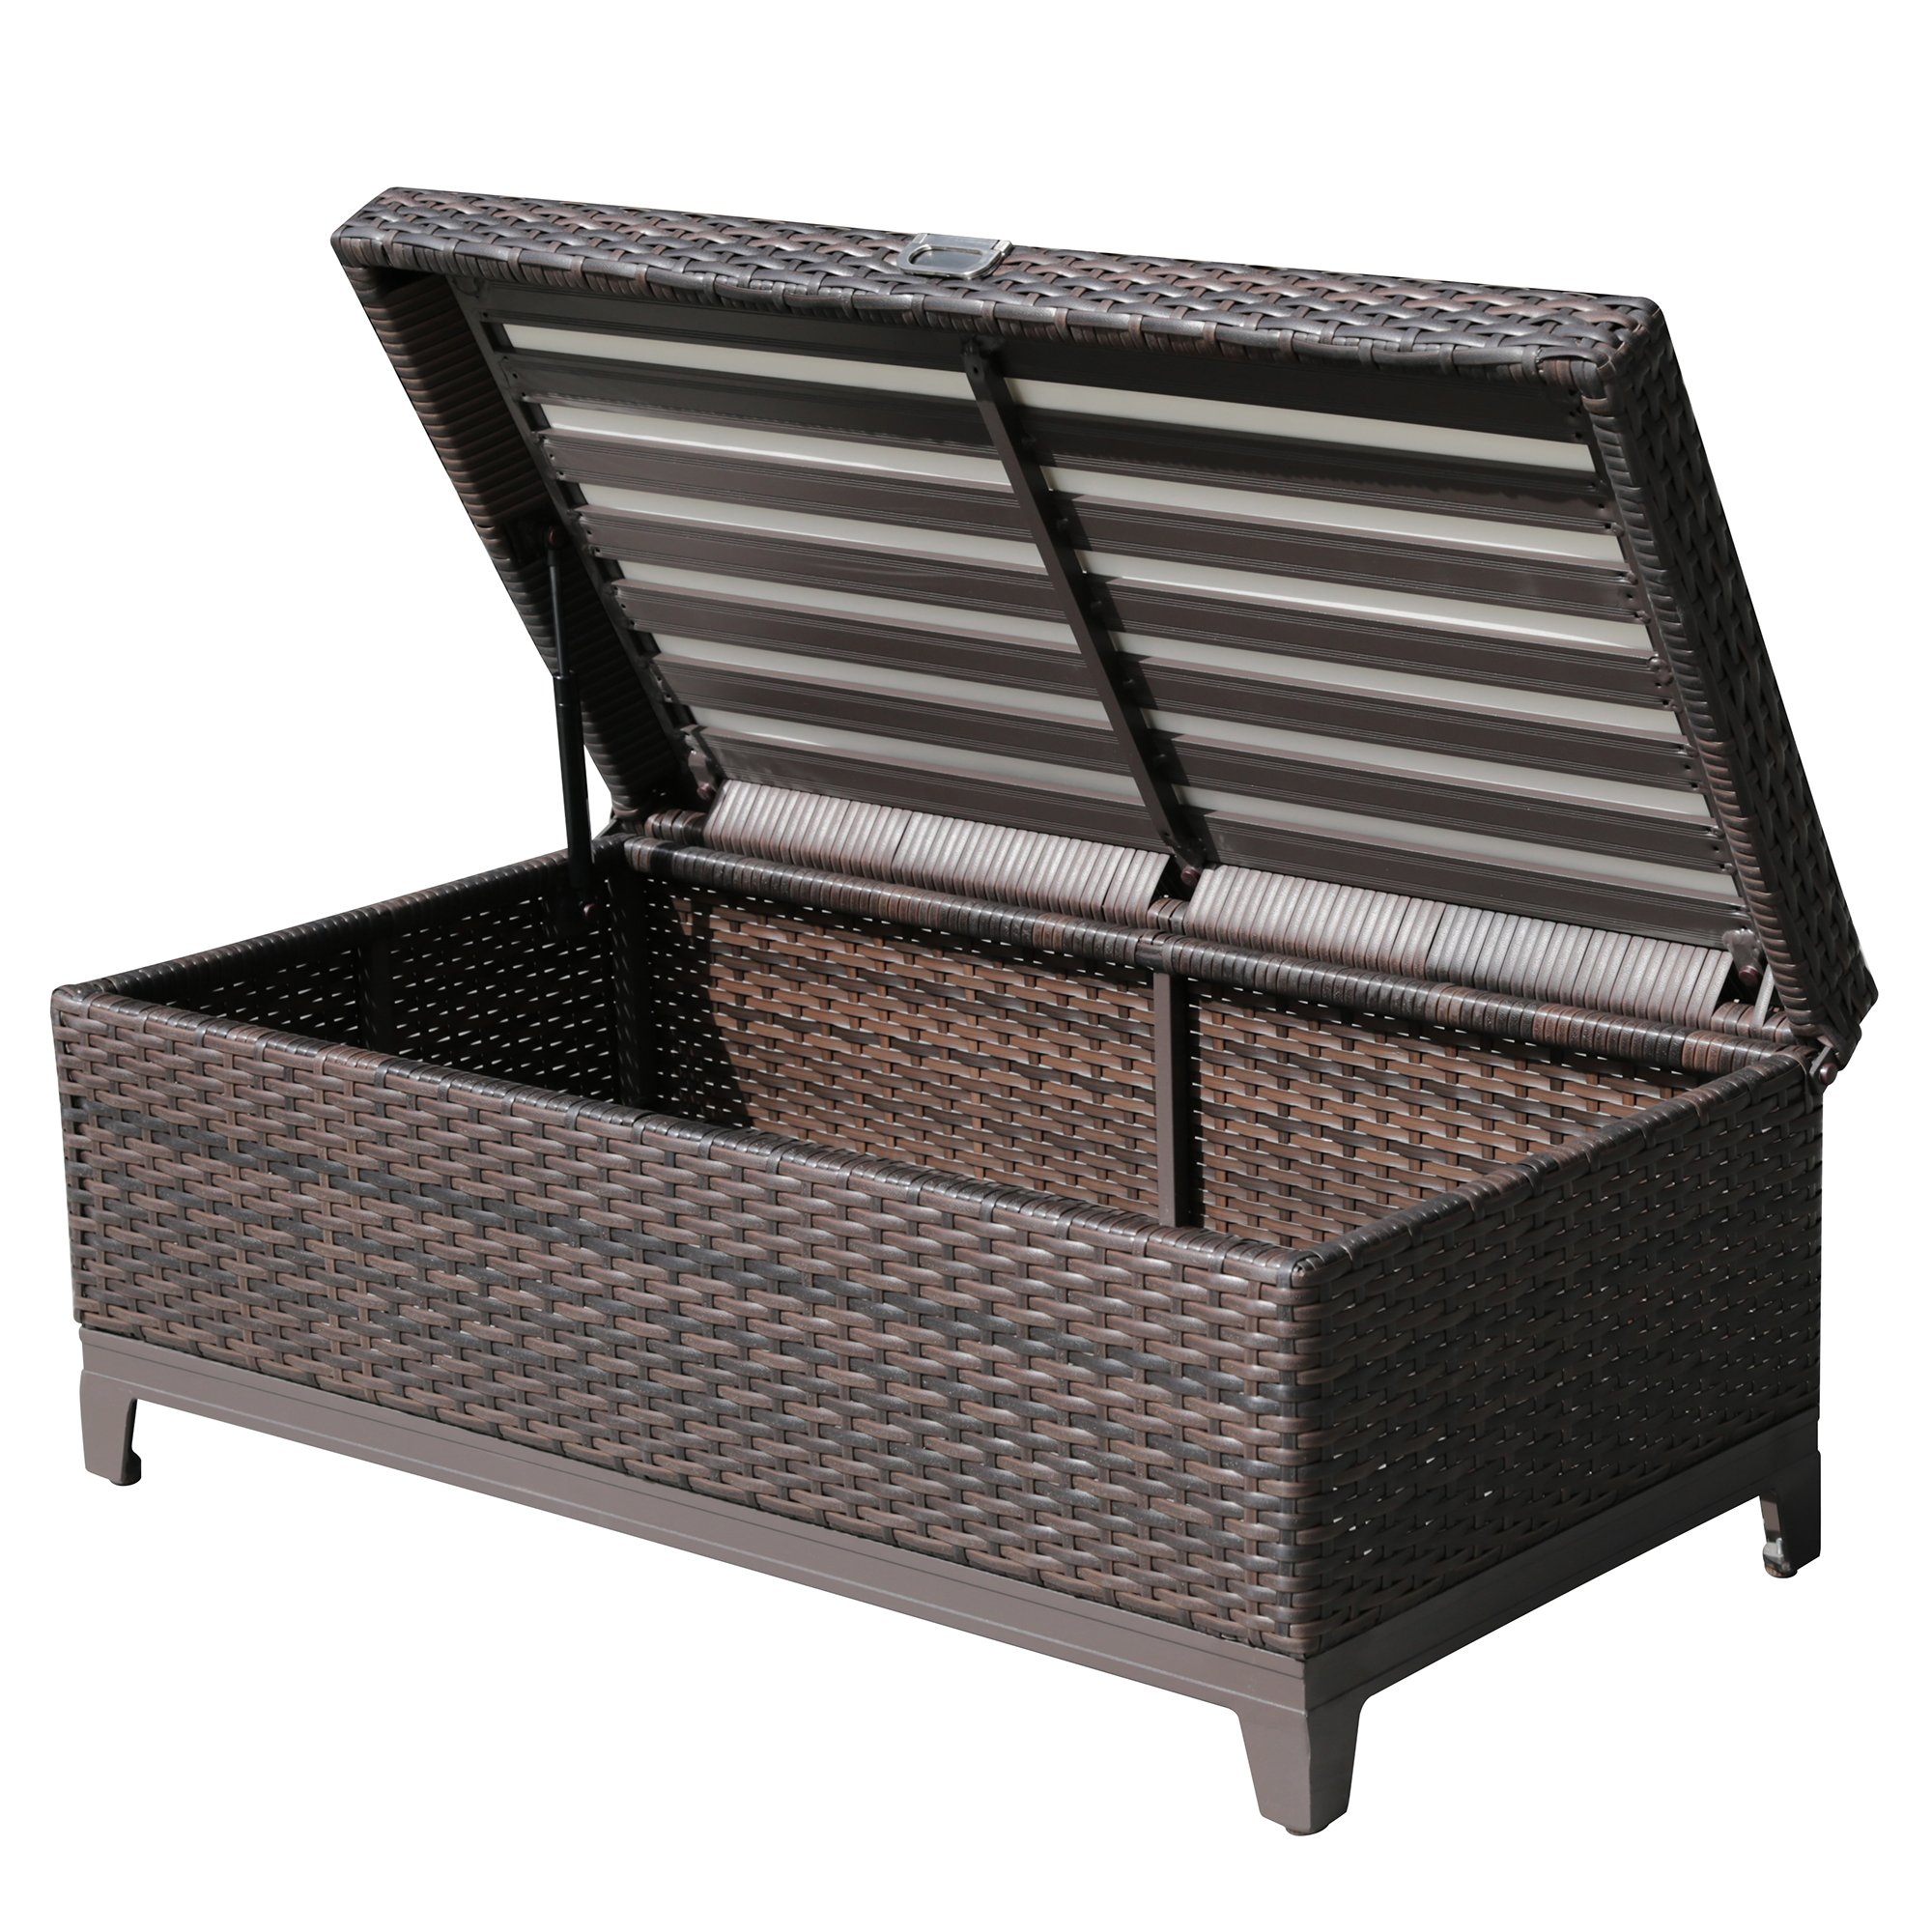 PATIOROMA Outdoor Patio Aluminum Frame Wicker Cushion Storage Ottoman Bench with Seat Cushion, Espresso Brown by PATIOROMA